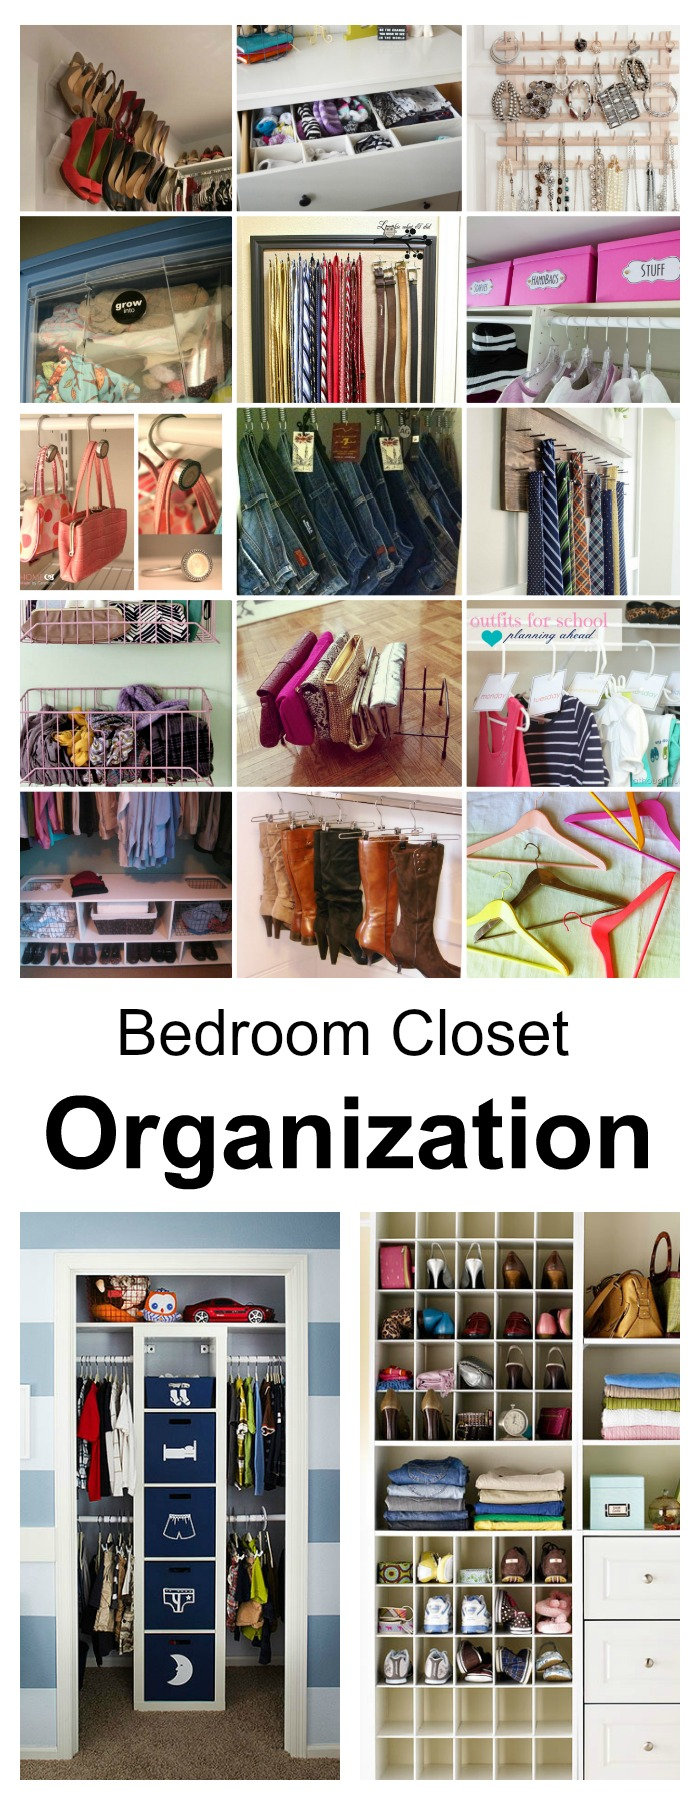 bedroom closet organization ideas pin